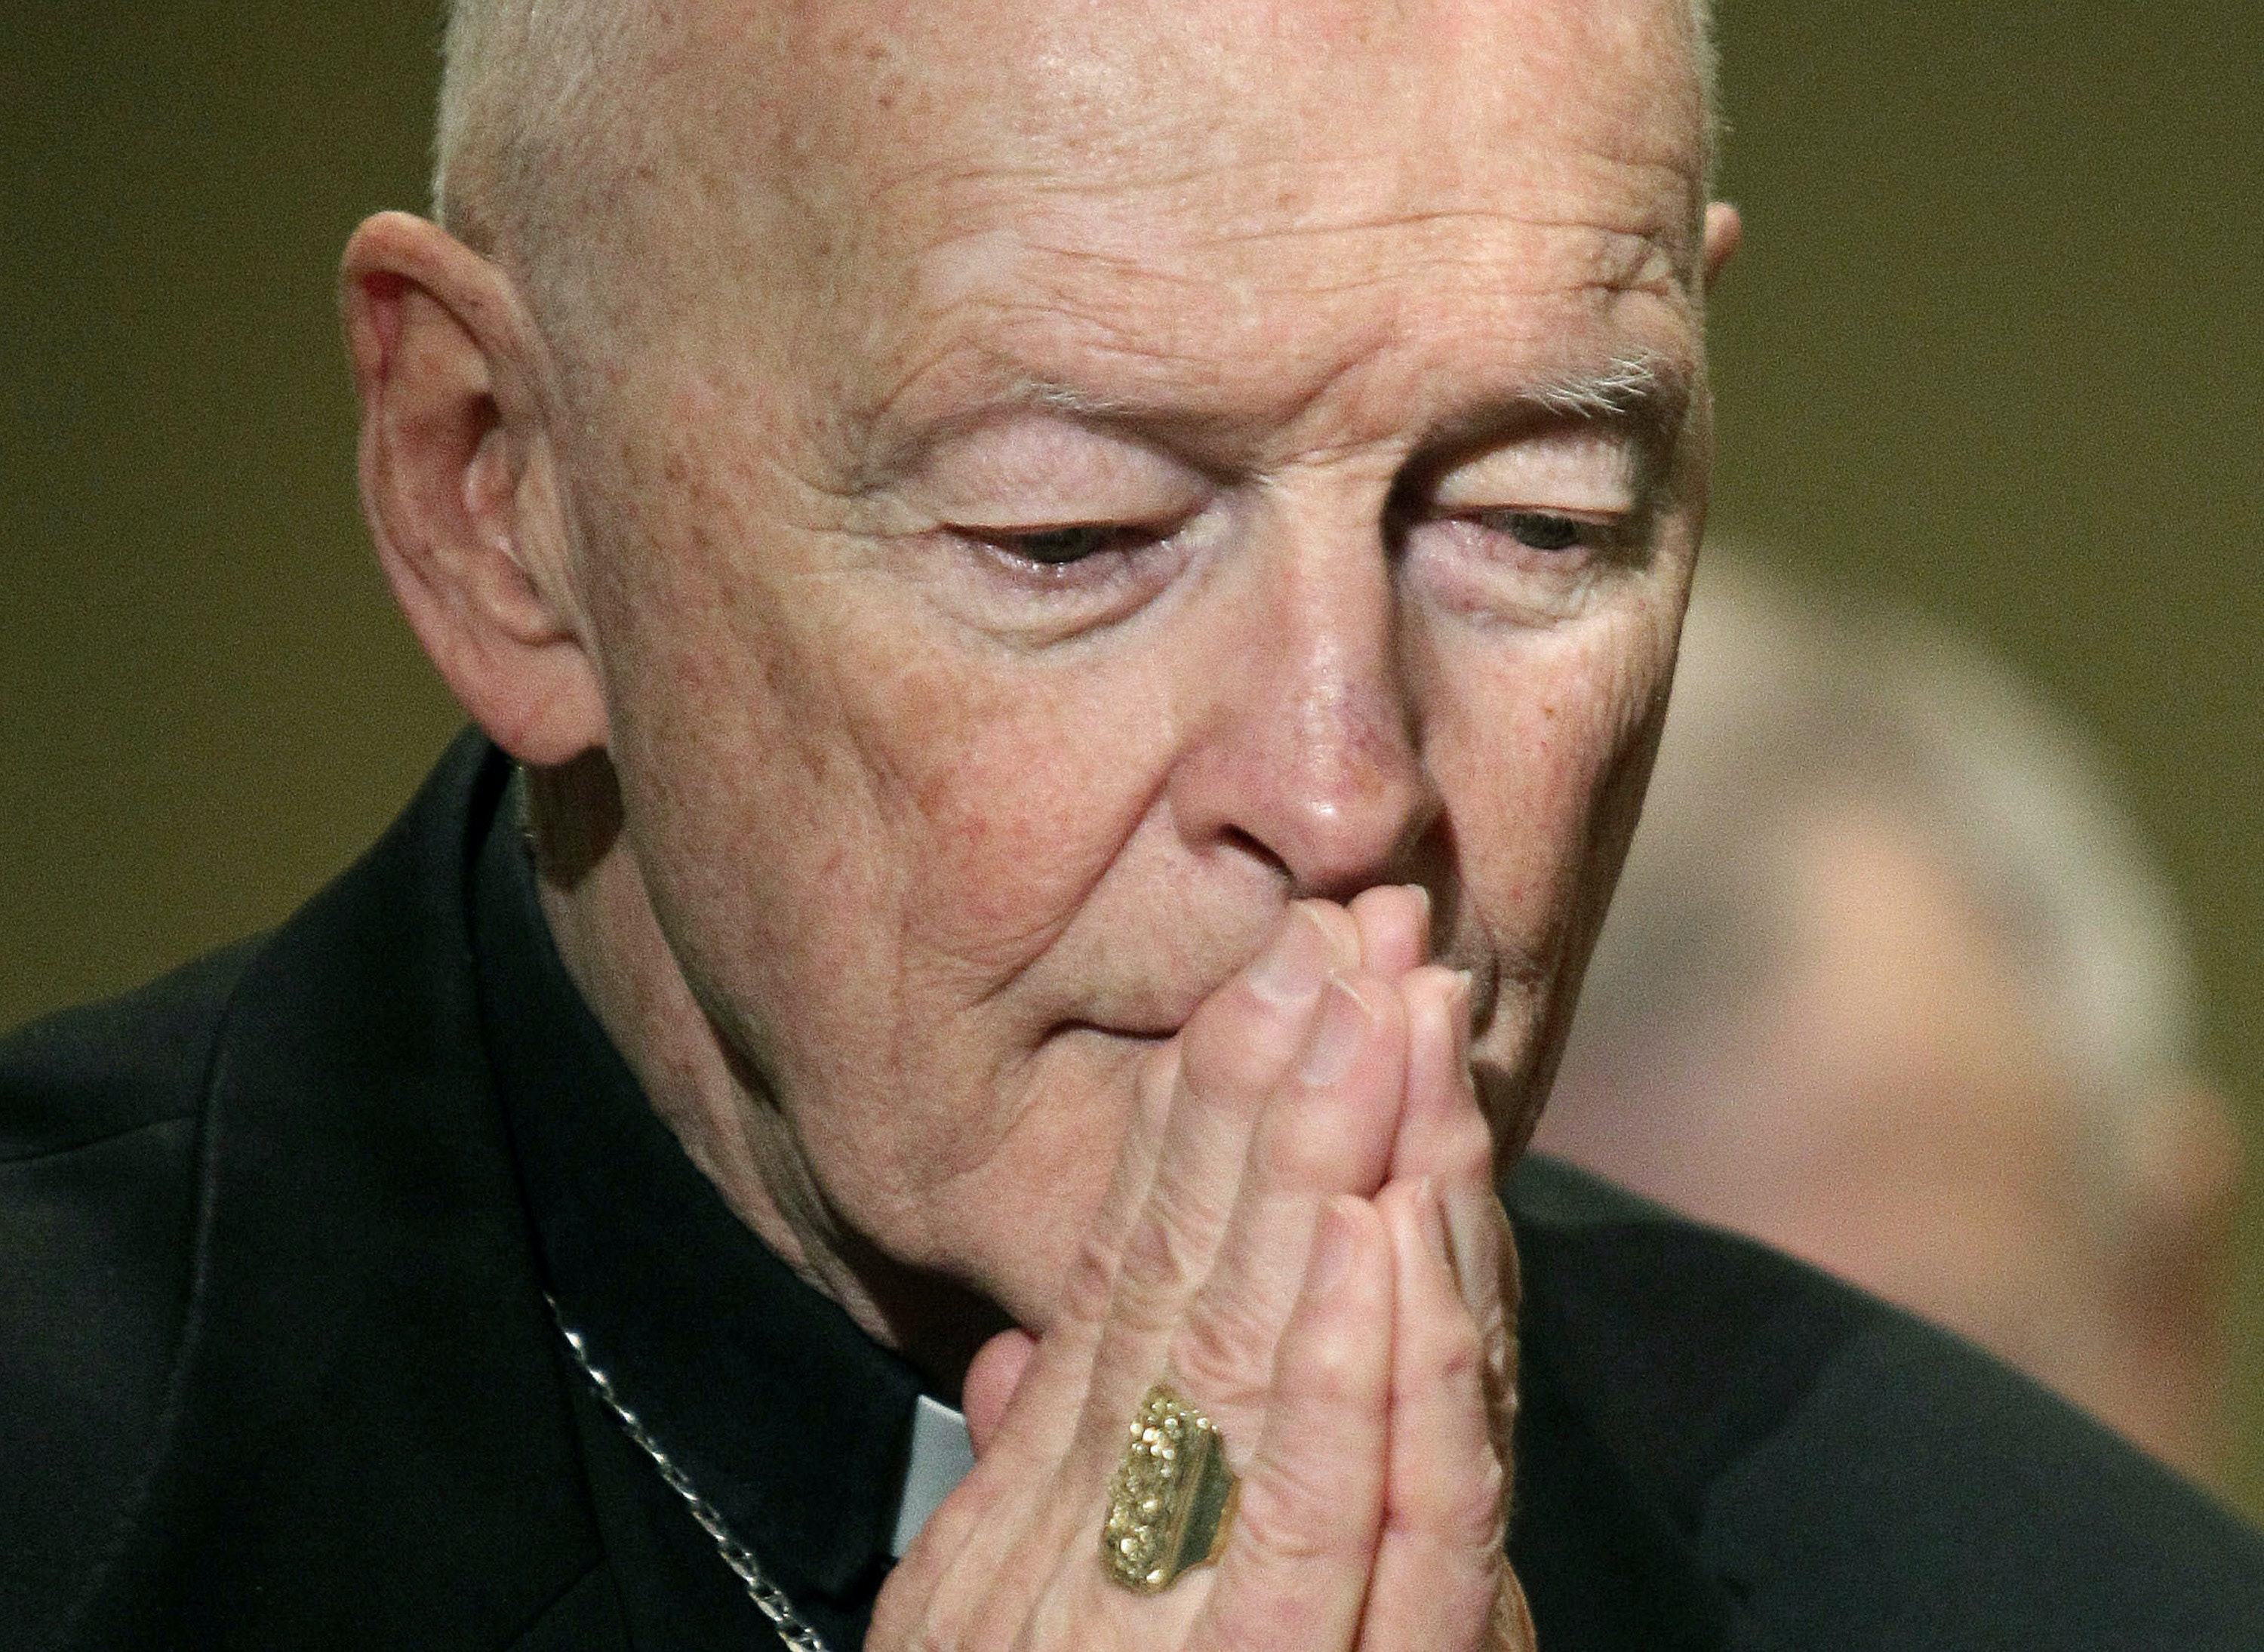 Theodore McCarrick will continue to be a Catholic priest